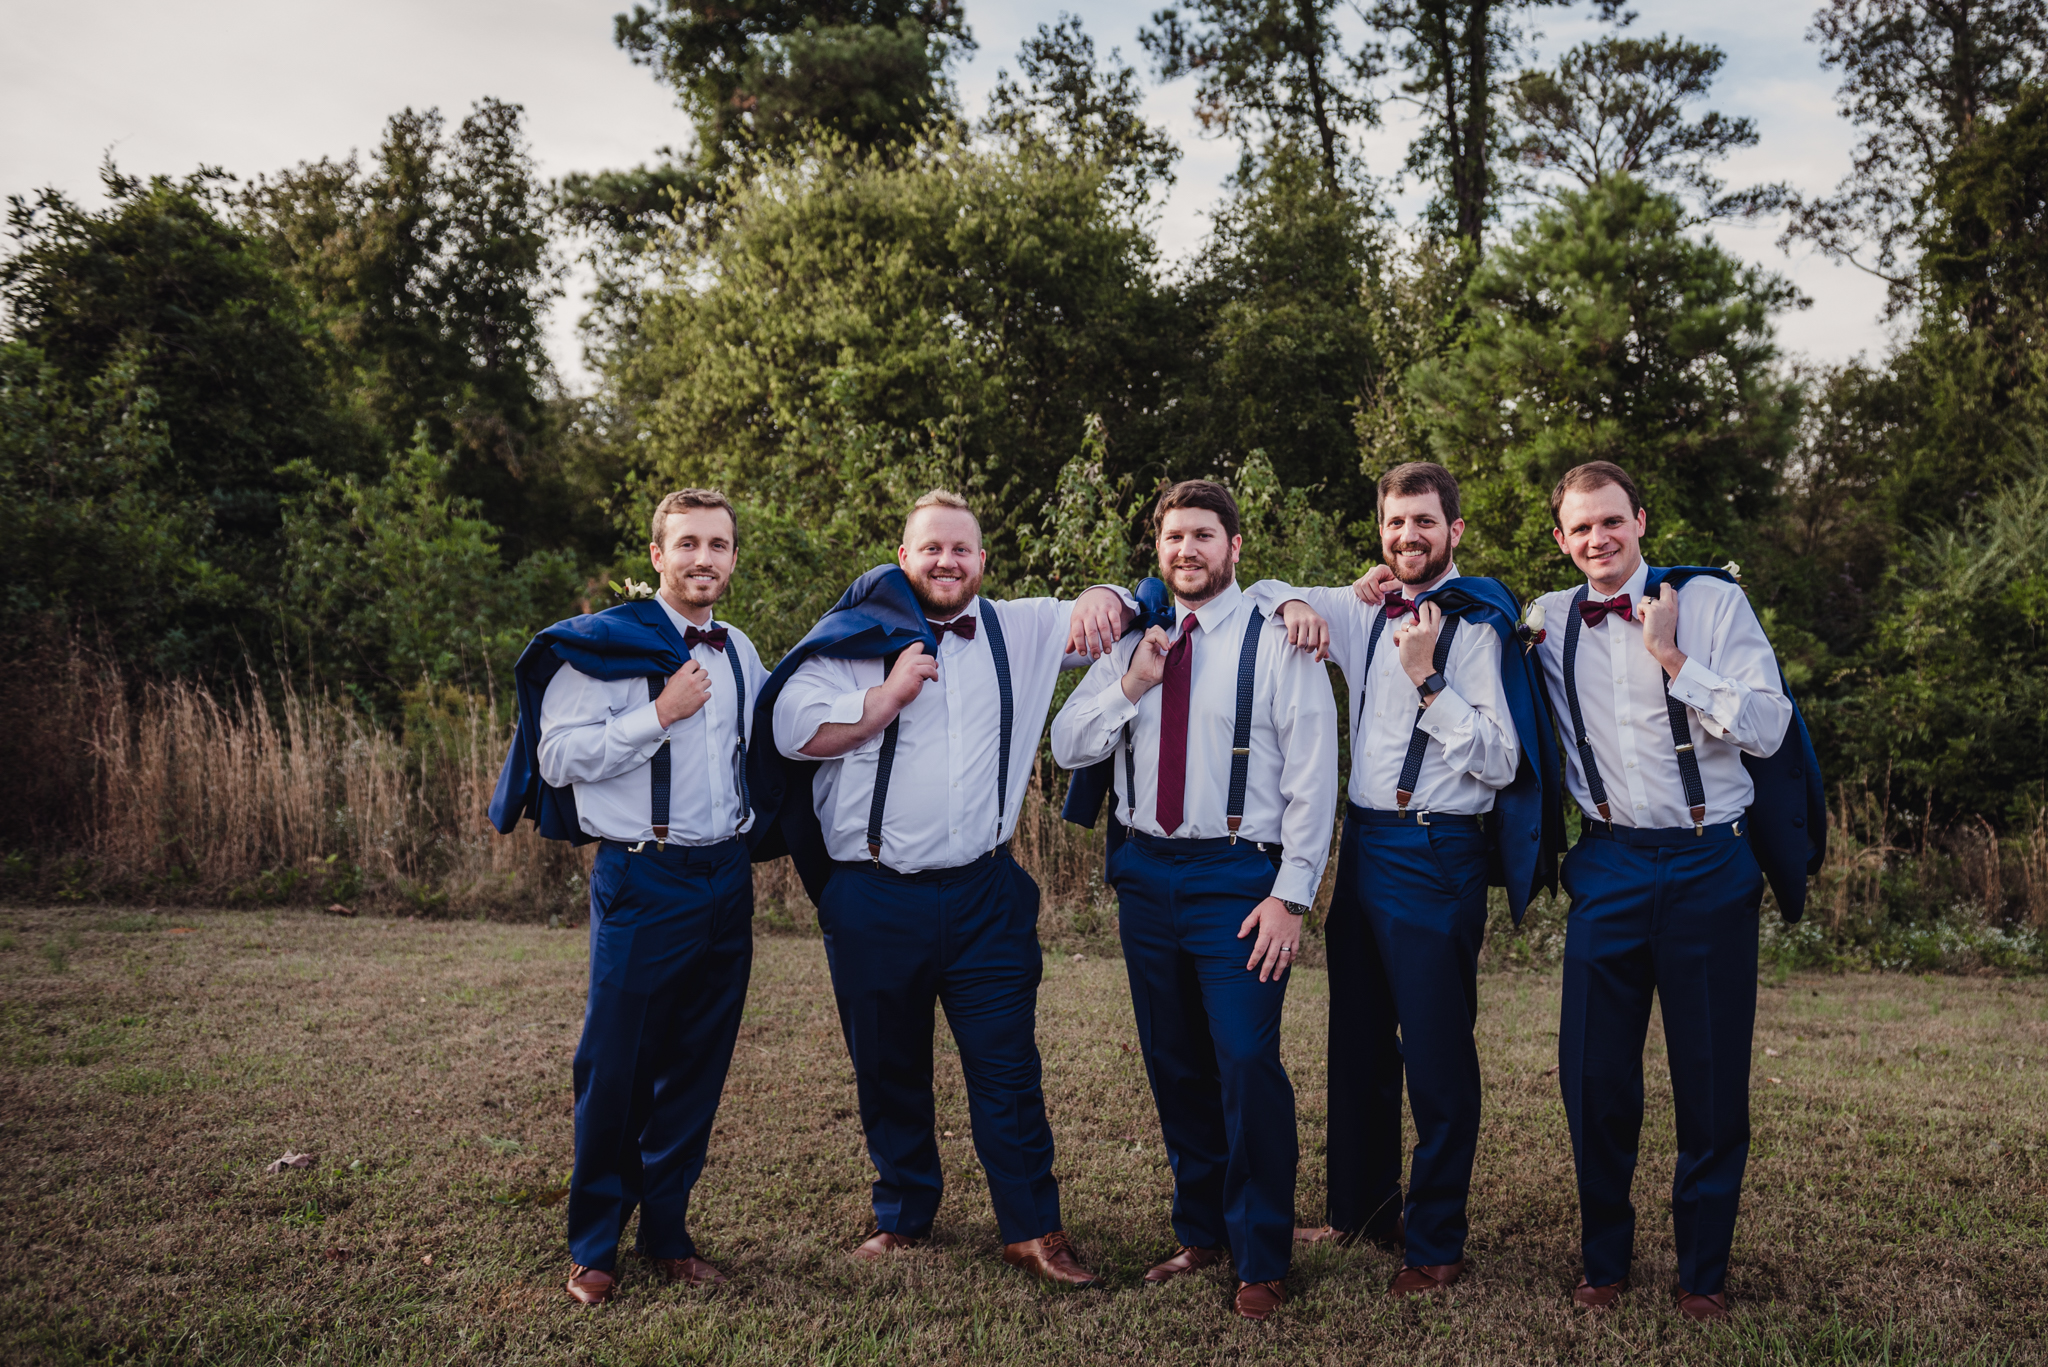 the-groomsmen-showing-off-their-suspenders.jpg